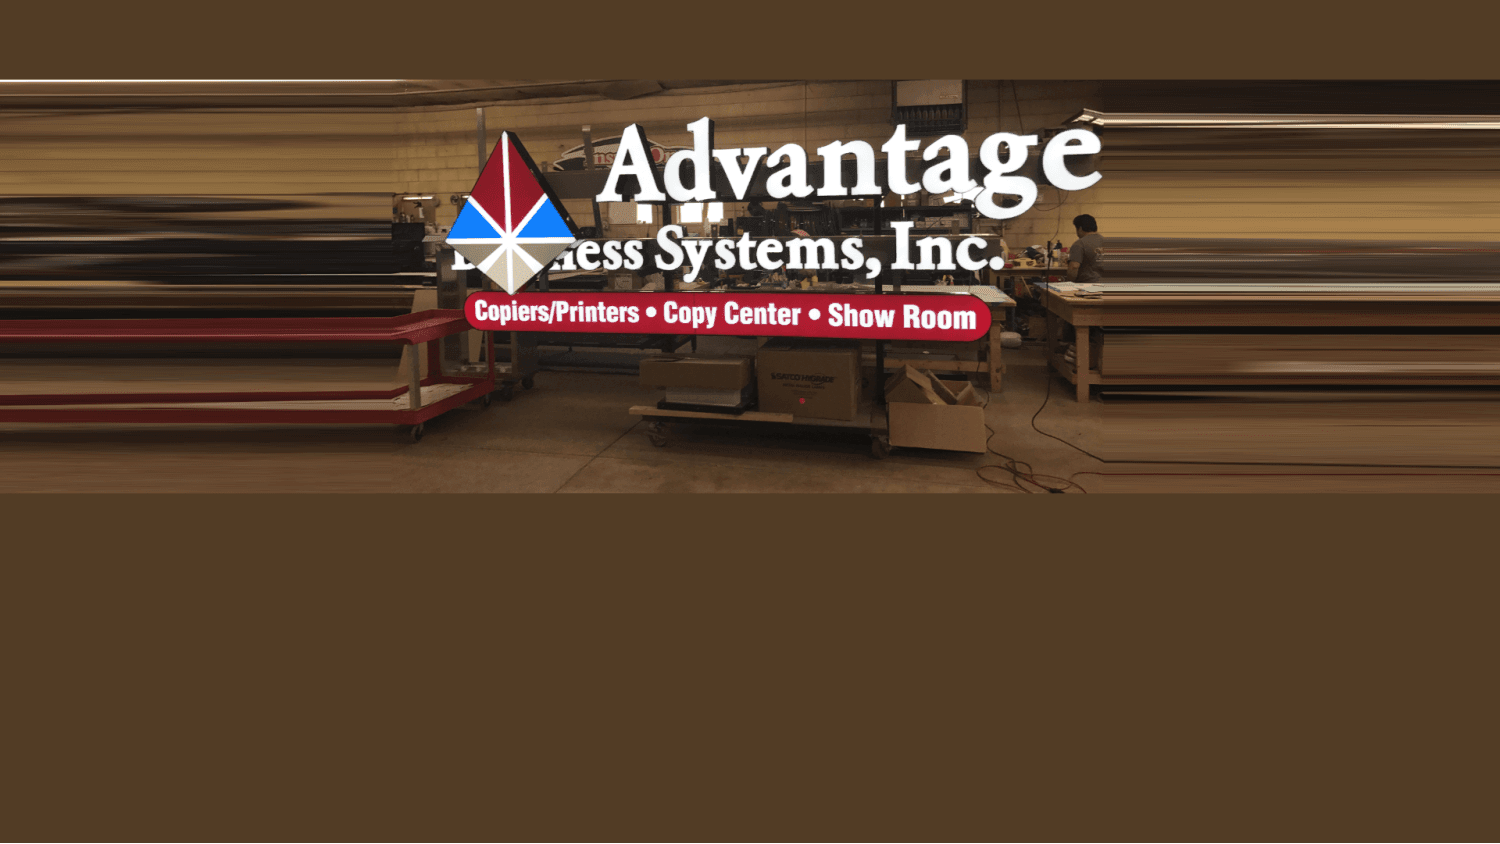 Advantage Systems, Inc. Signs